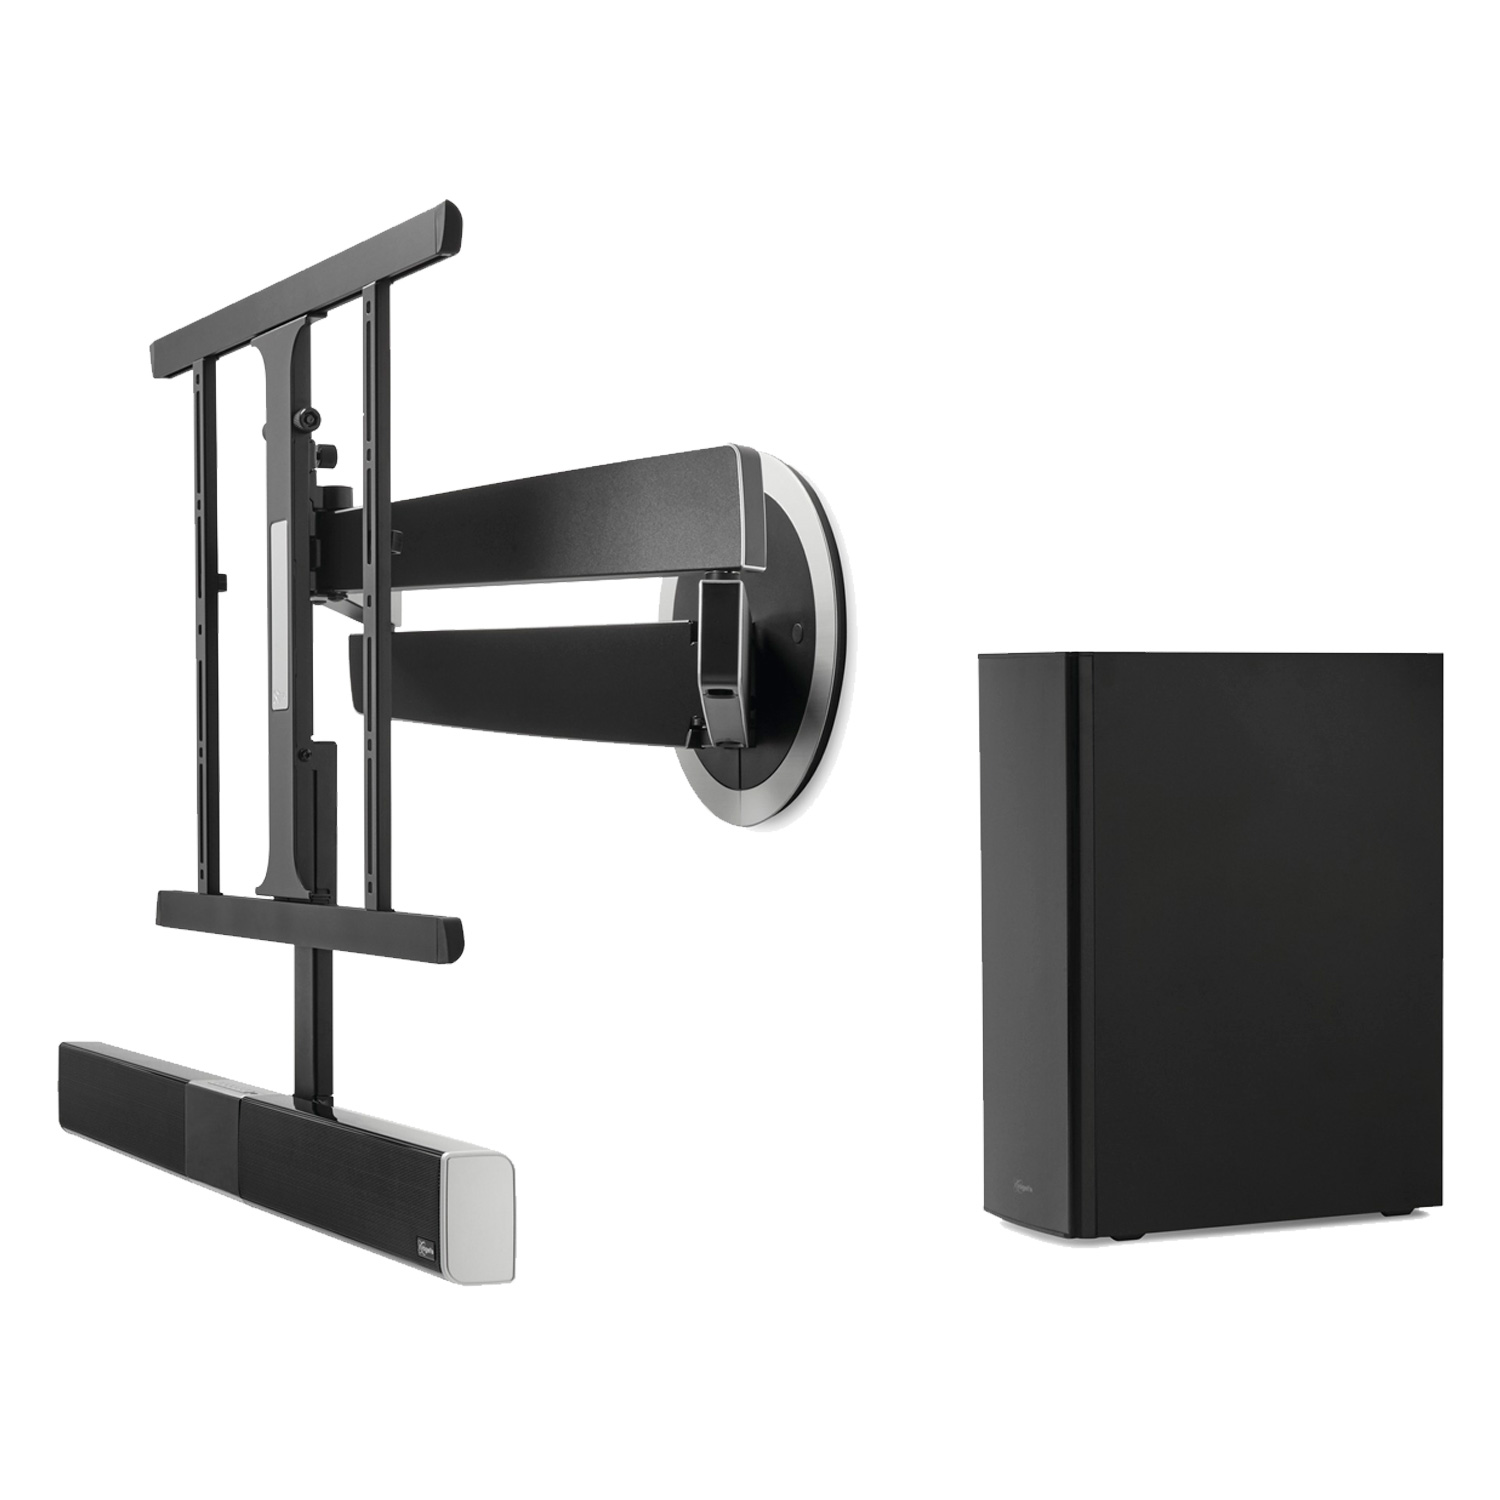 Vogel 39 s soundmount next 8365 next 8365 achat vente support mural tv - Support mural televiseur ...